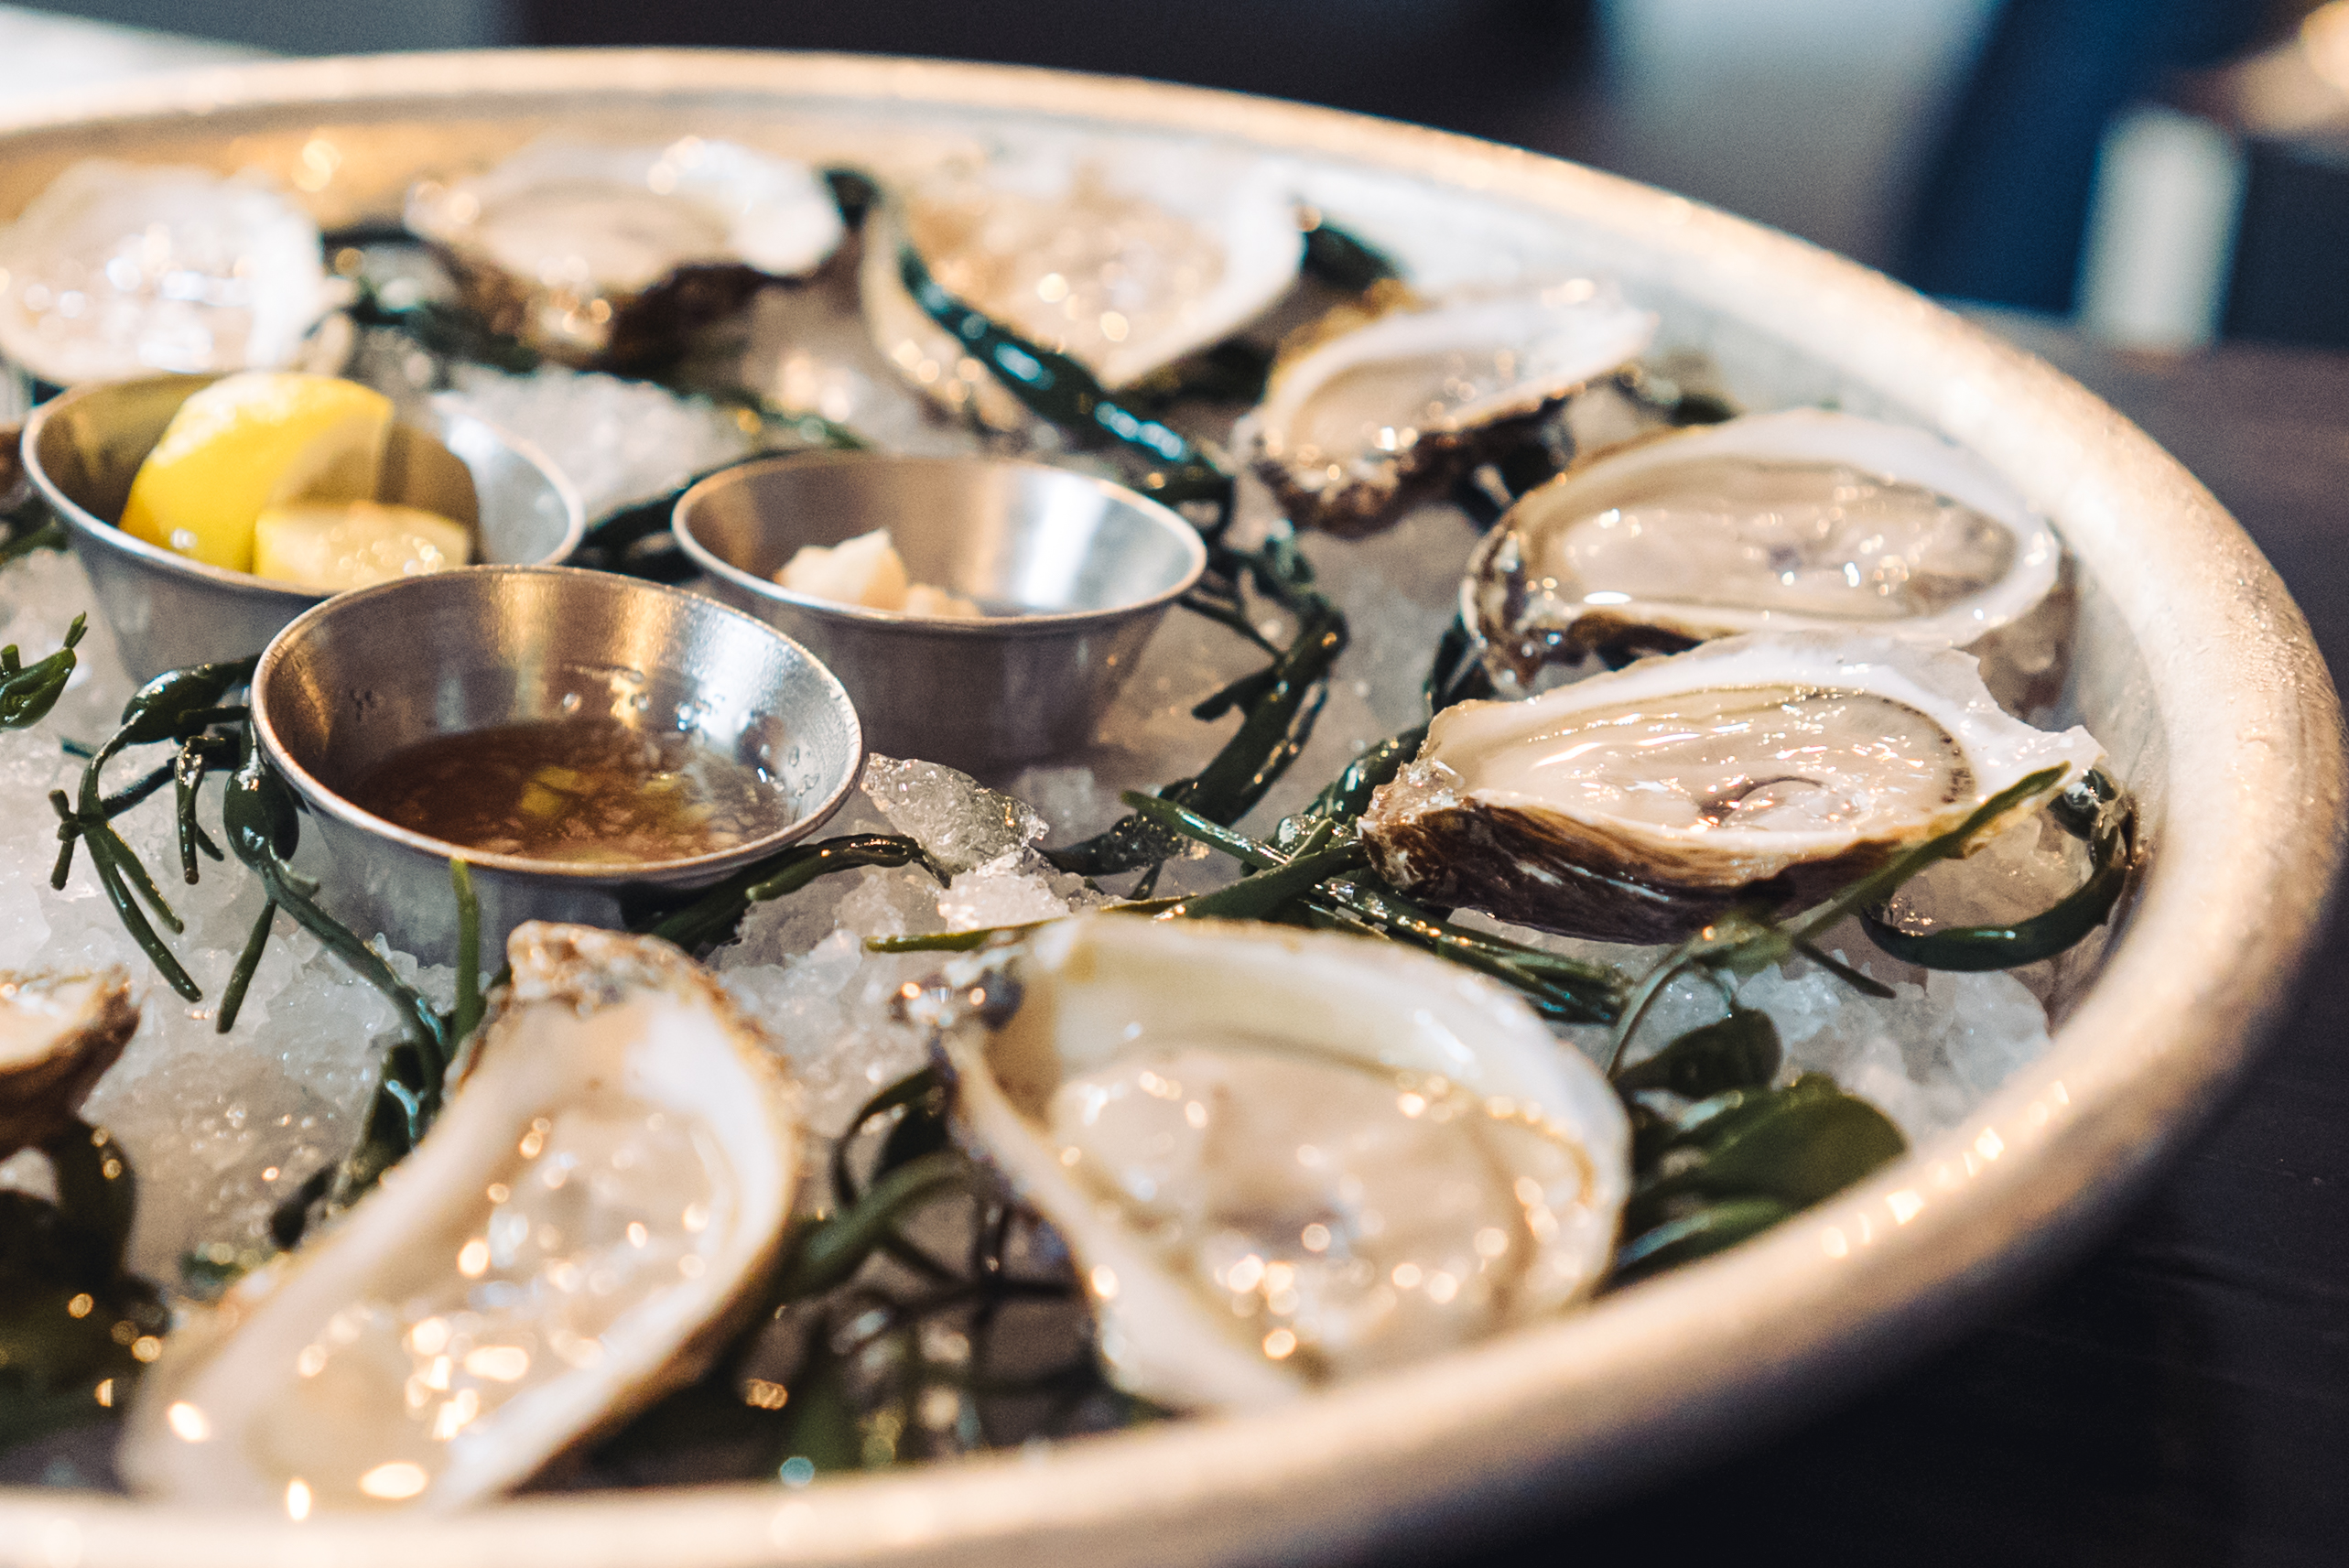 plate of oysters at the Shuckery in Sonoma County